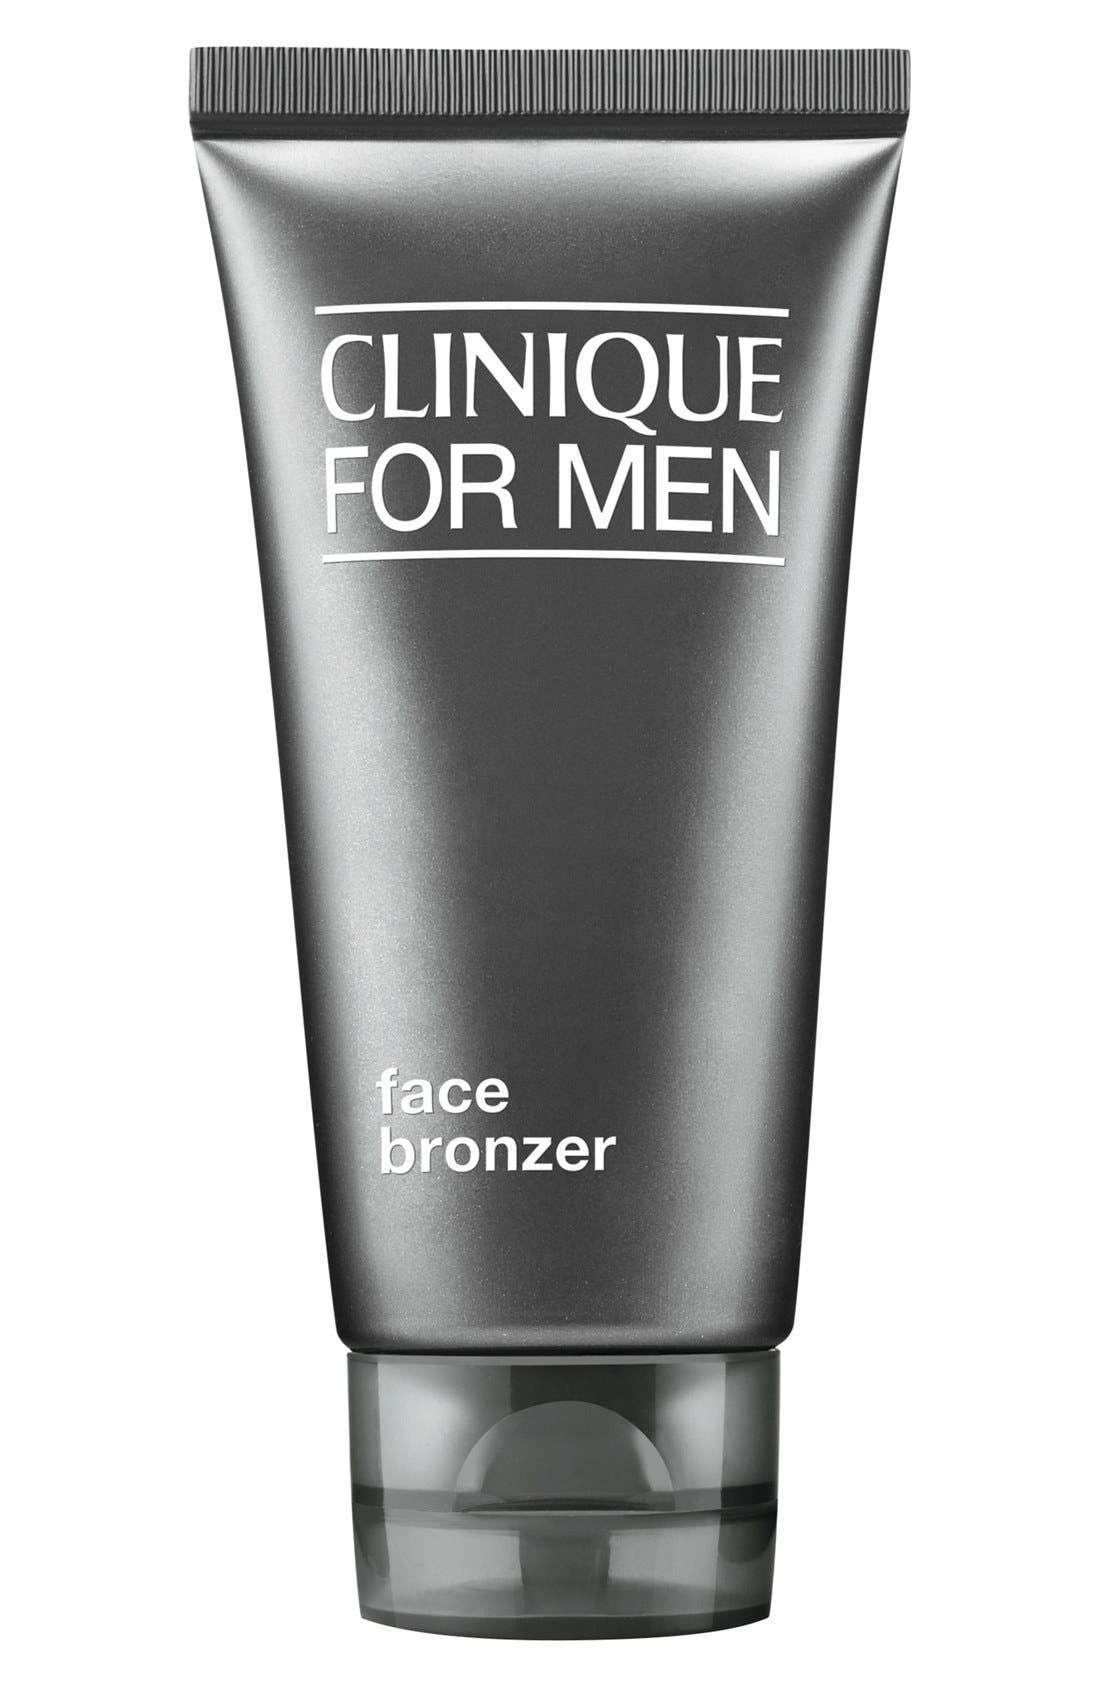 For Men Face Bronzer by Clinique